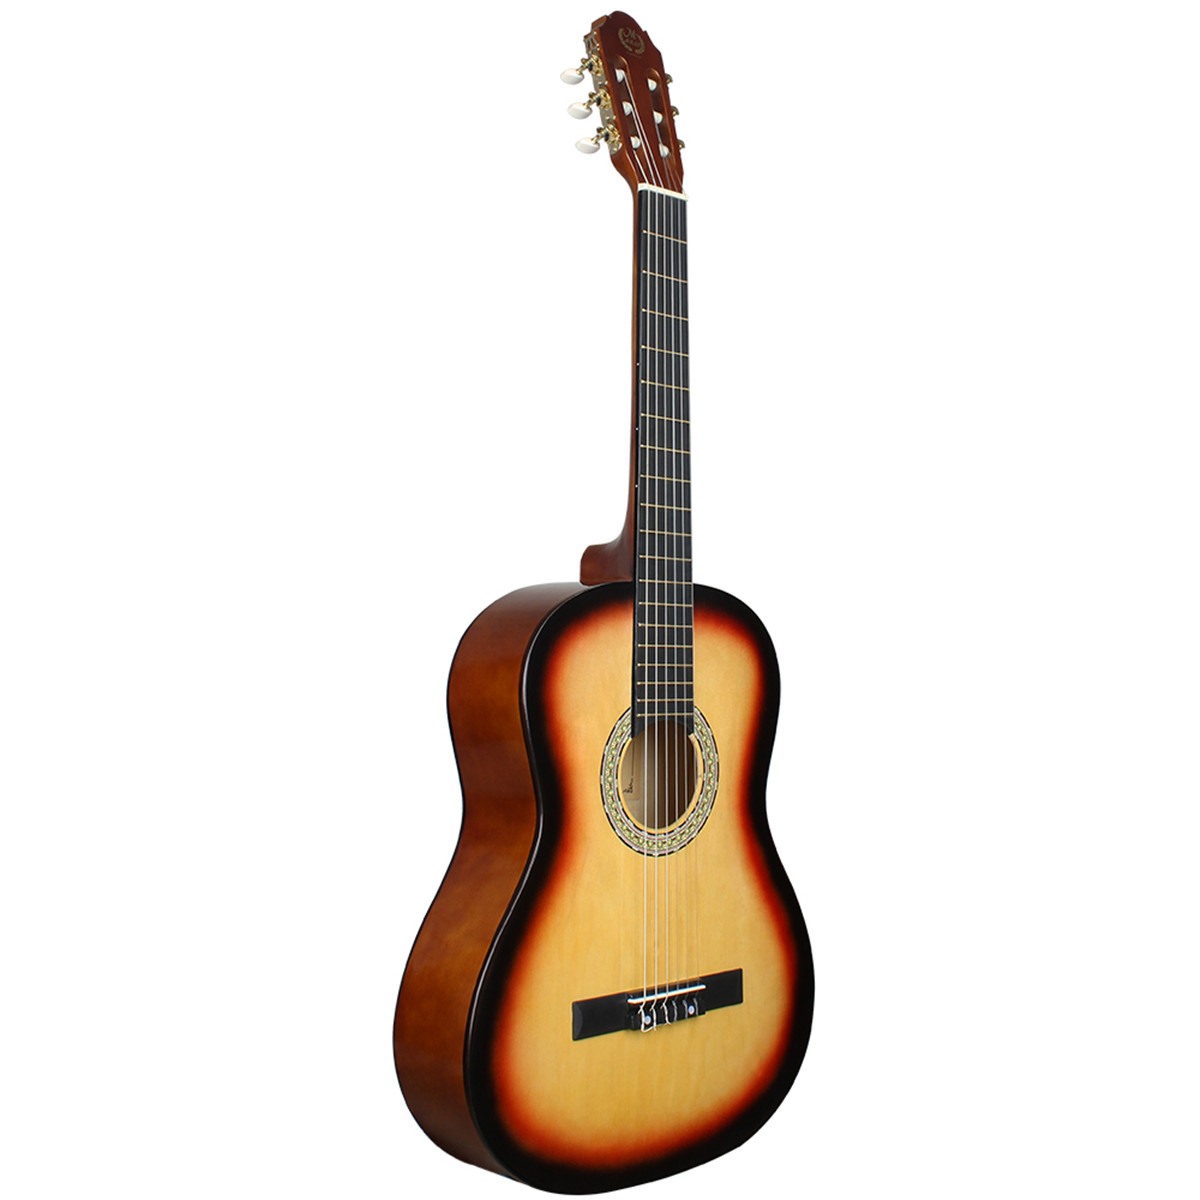 39 inch modern wood classical guitar beginner practice entry classical acoustic. Black Bedroom Furniture Sets. Home Design Ideas